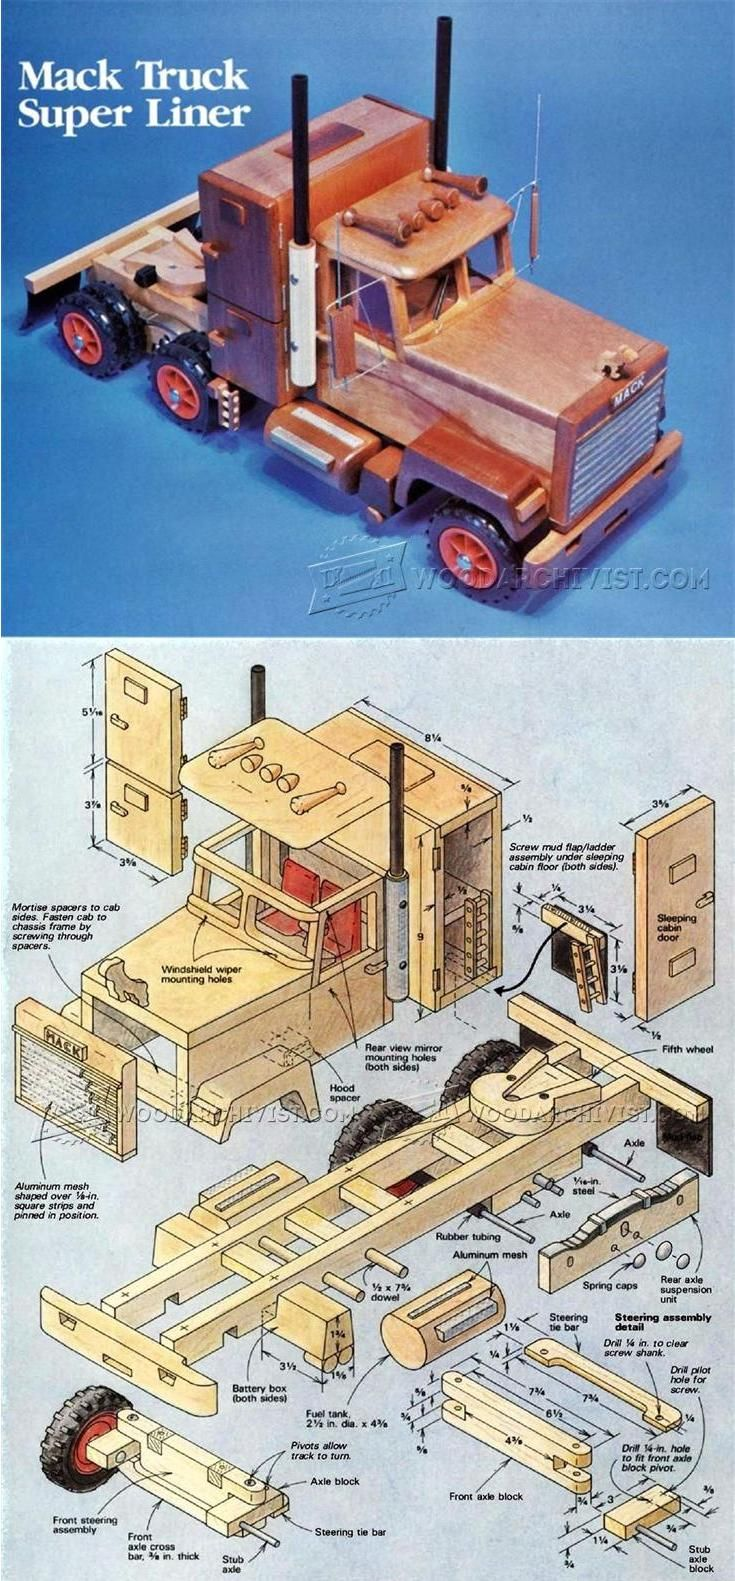 Toys toy boxes and fire trucks on pinterest - Wooden Truck Plans Wooden Toy Plans And Projects Woodarchivist Com